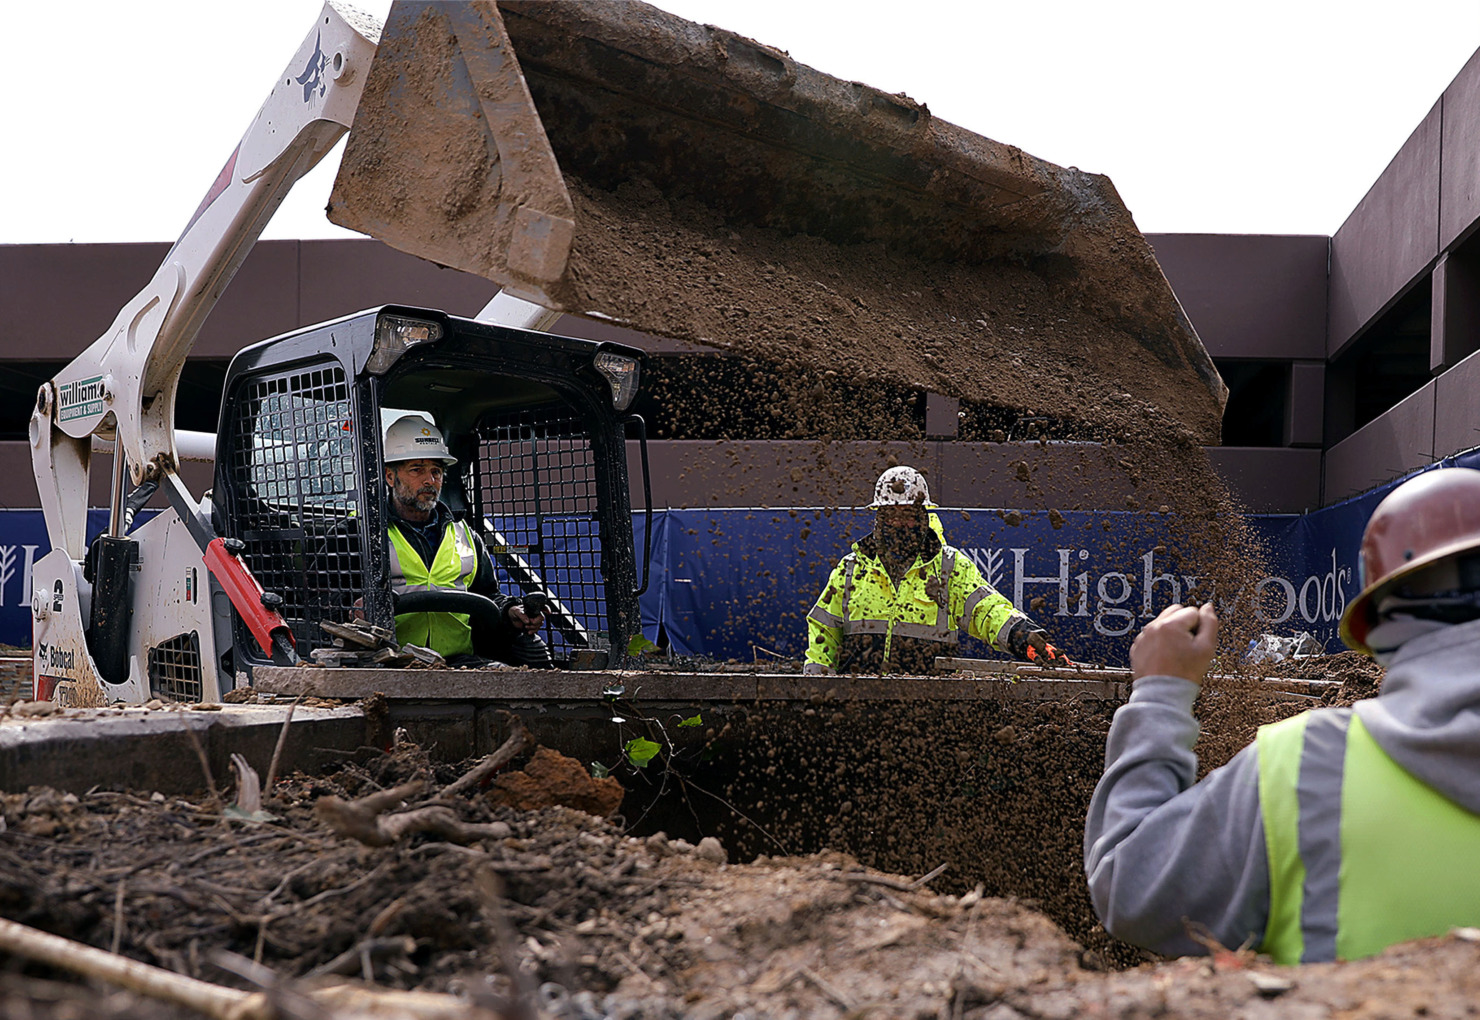 <strong>Phillip McCullough dumps a load of dirt into a freshly excavated hole with the help of Eduardo Olvera and Rojelio Olvera on Thursday, Feb. 14, 2019. The men were working on overhauling the Crescent Center's landscaping.</strong> (Patrick Lantrip/Daily Memphian)